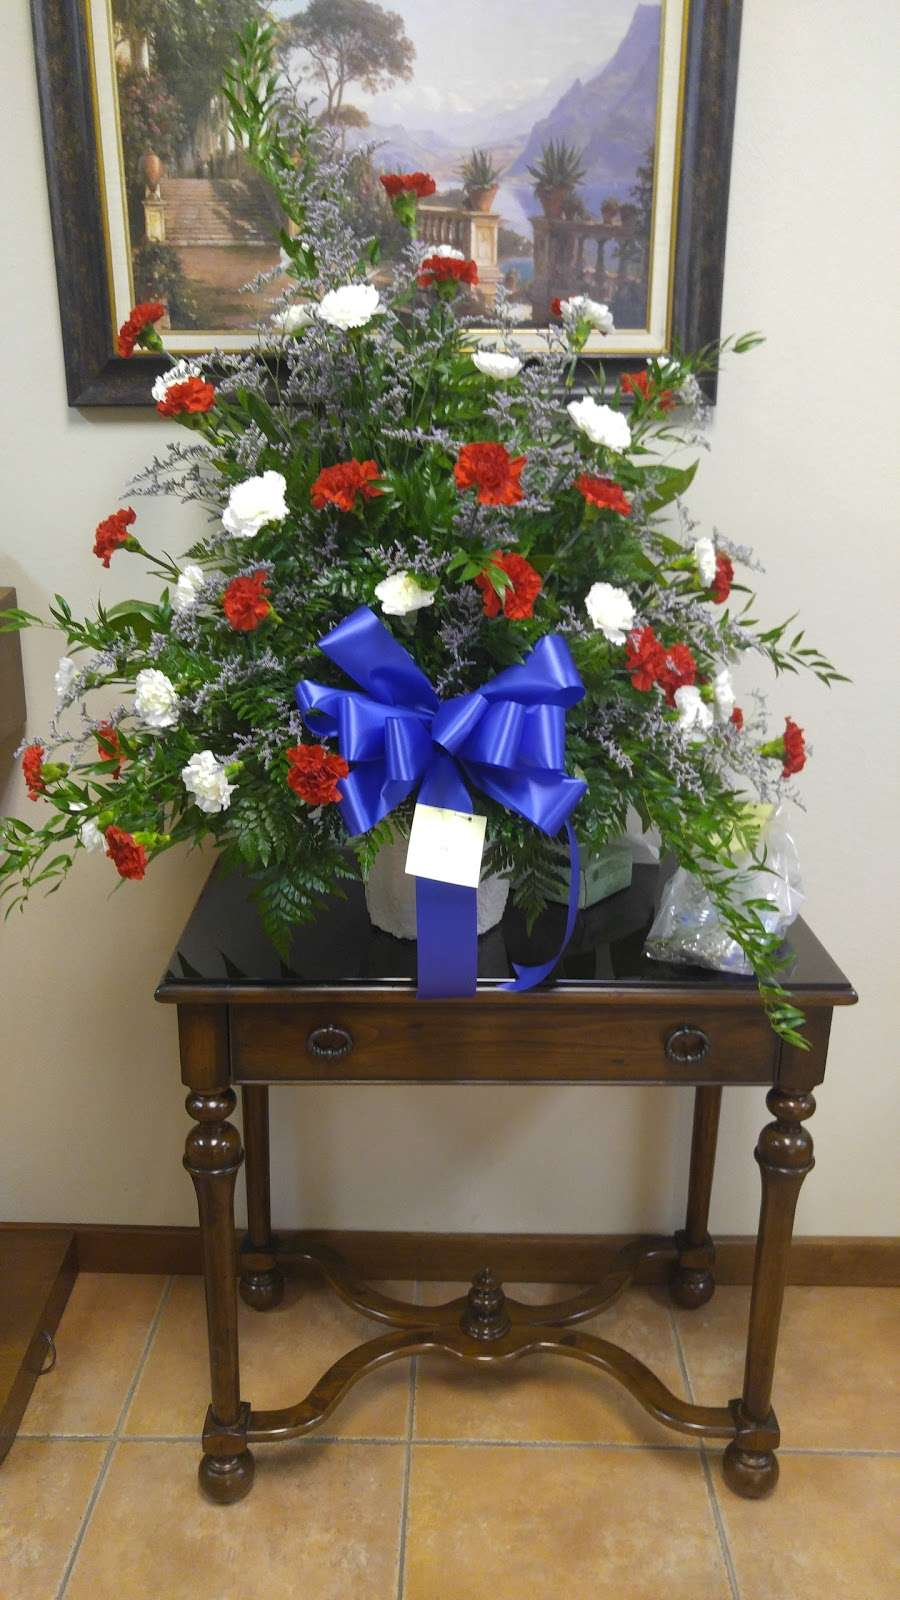 Funeraria Del Angel Trevino Funeral Home - funeral home  | Photo 5 of 10 | Address: 226 Cupples Rd, San Antonio, TX 78237, USA | Phone: (210) 434-0595